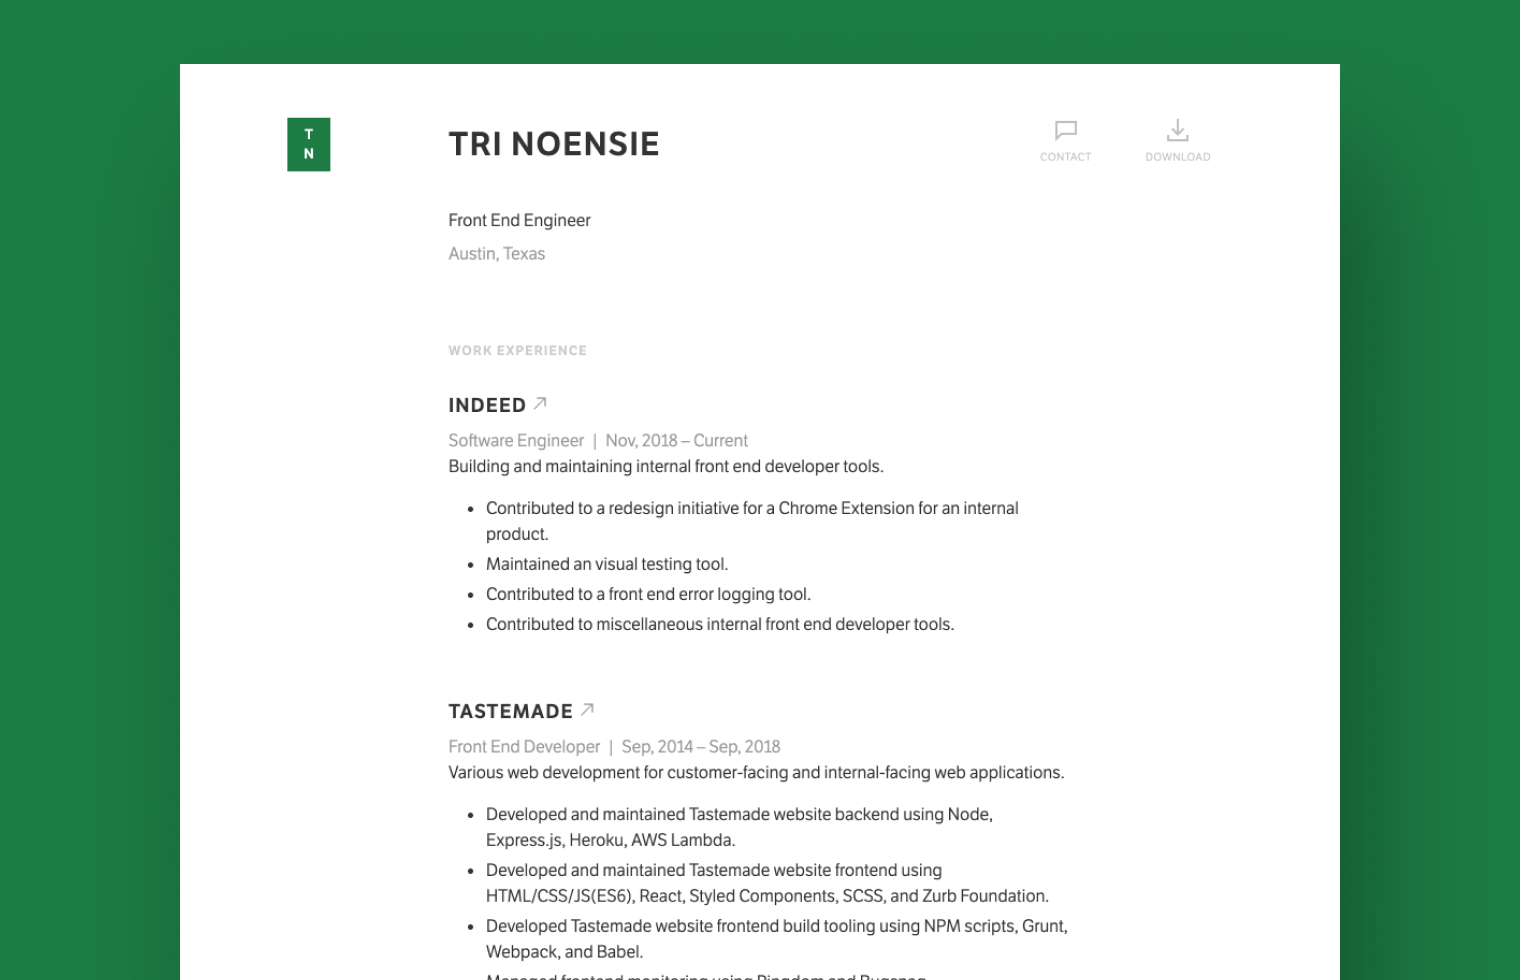 Front End Developer Resume example built with Standard Resume